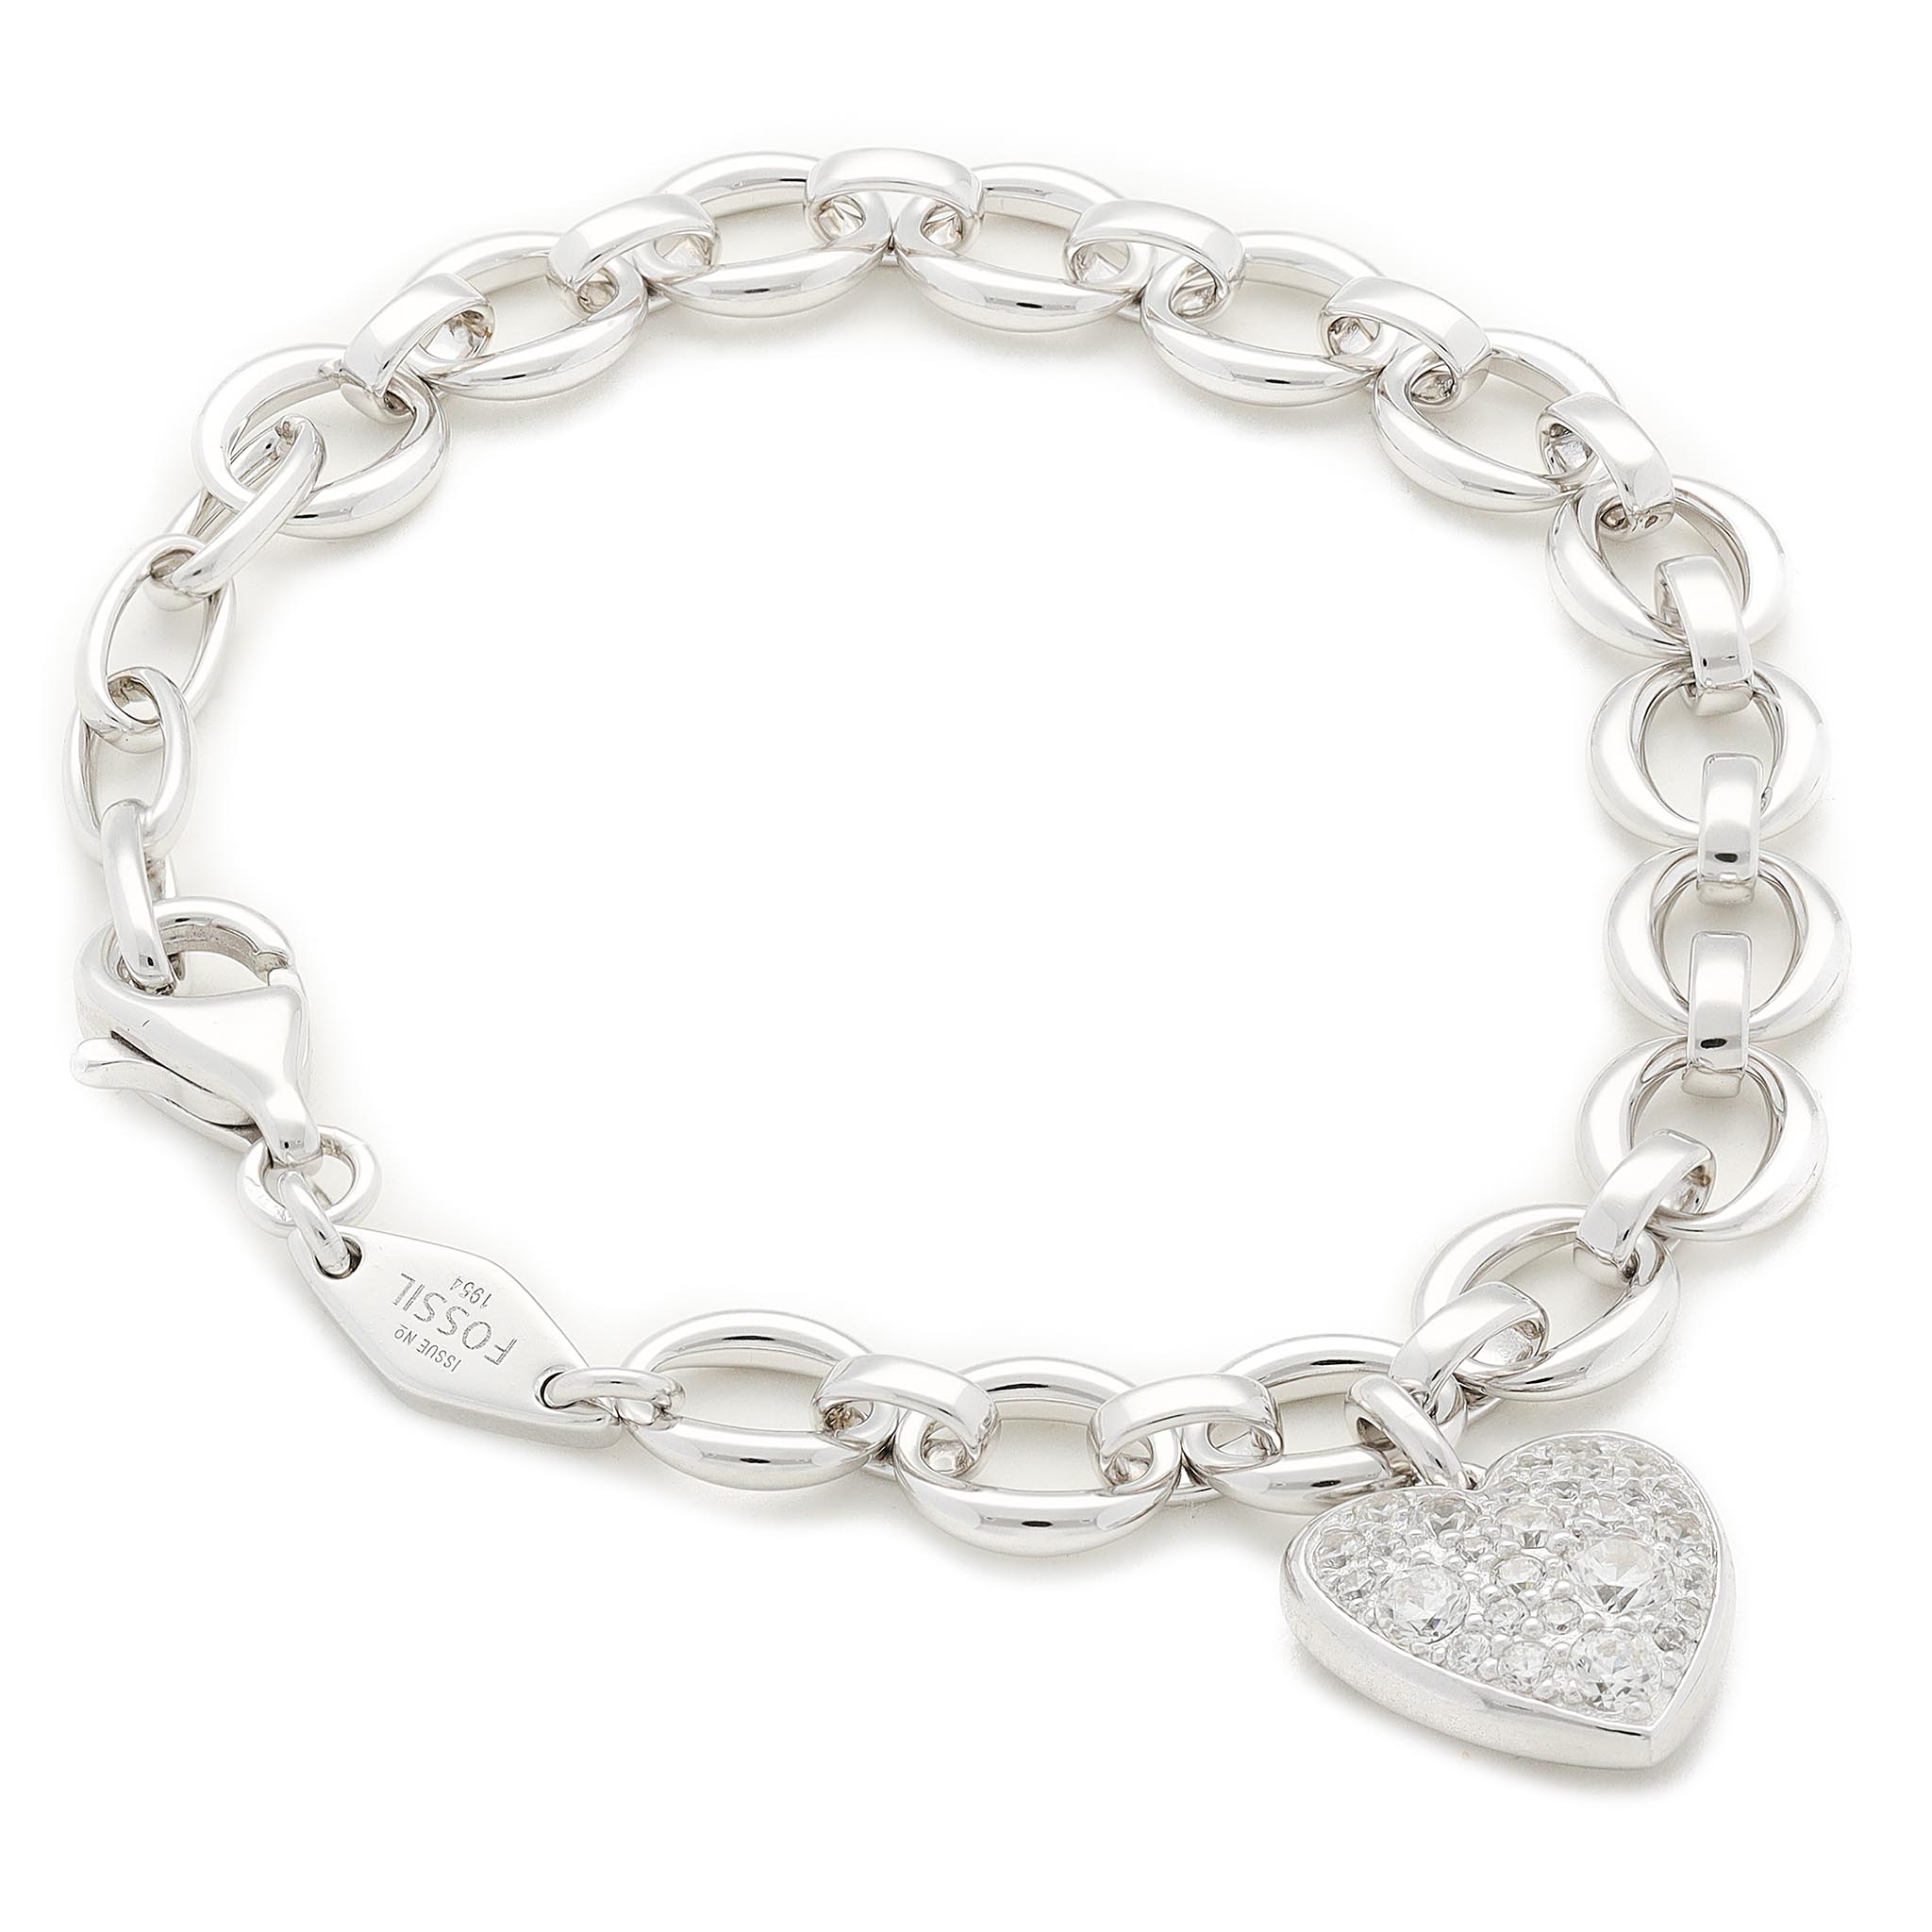 Image of Armband FOSSIL - Motif Items JFS00153040 Silver